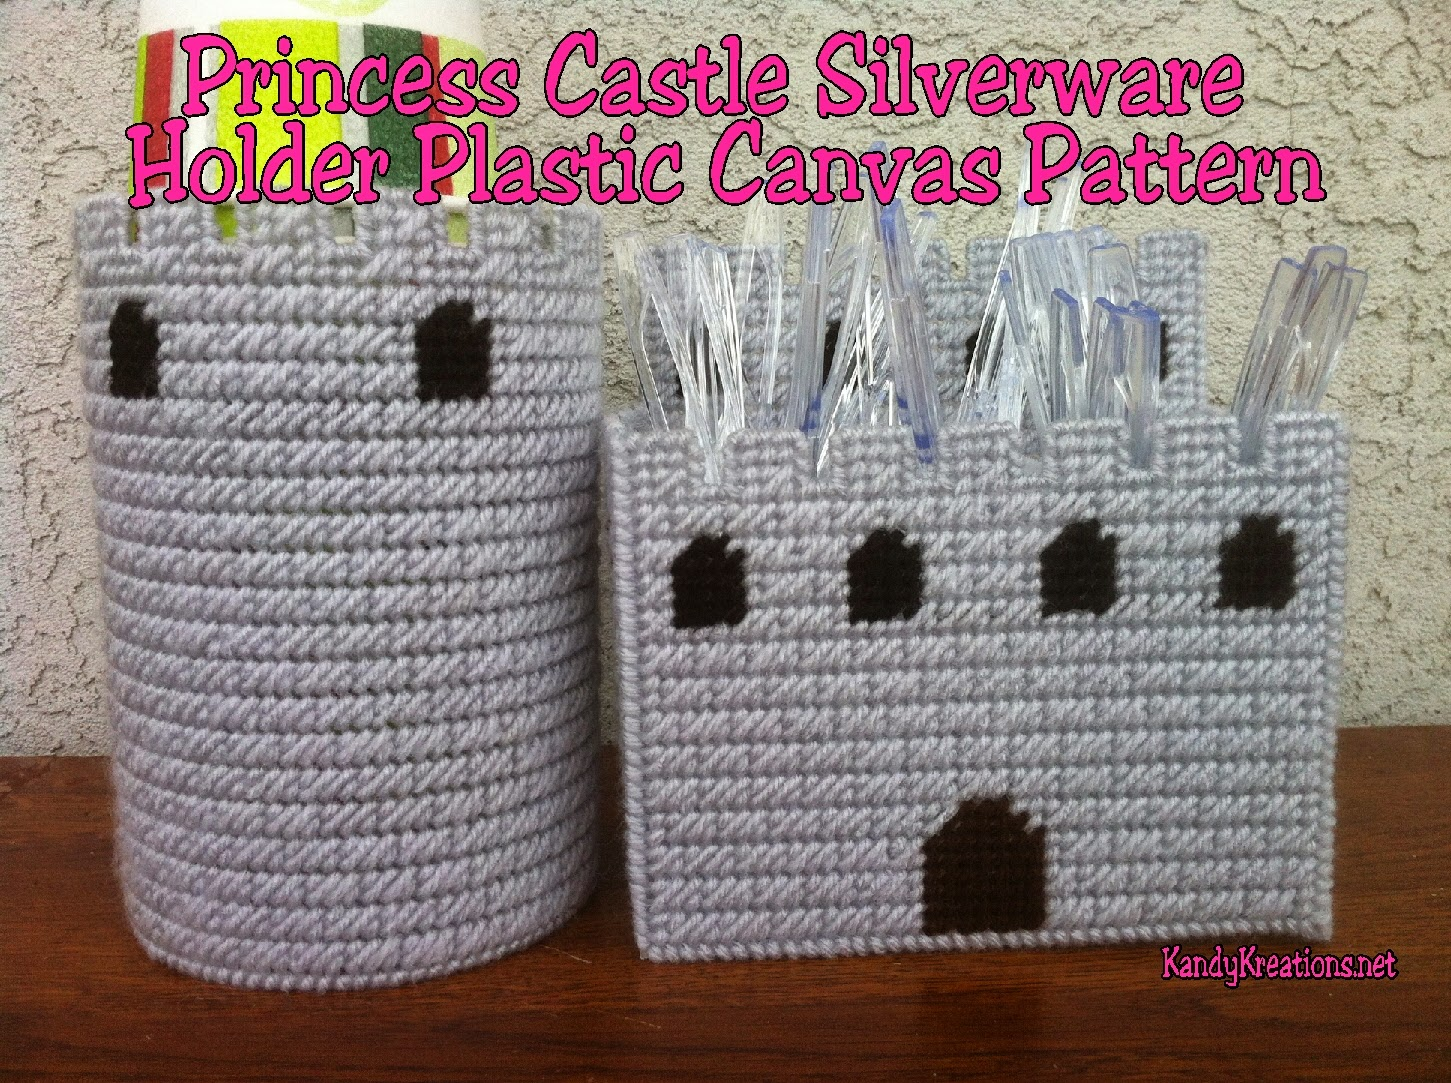 Princess Castle Silverware Pattern Plastic Canvas Patterns by Kandy Kreations